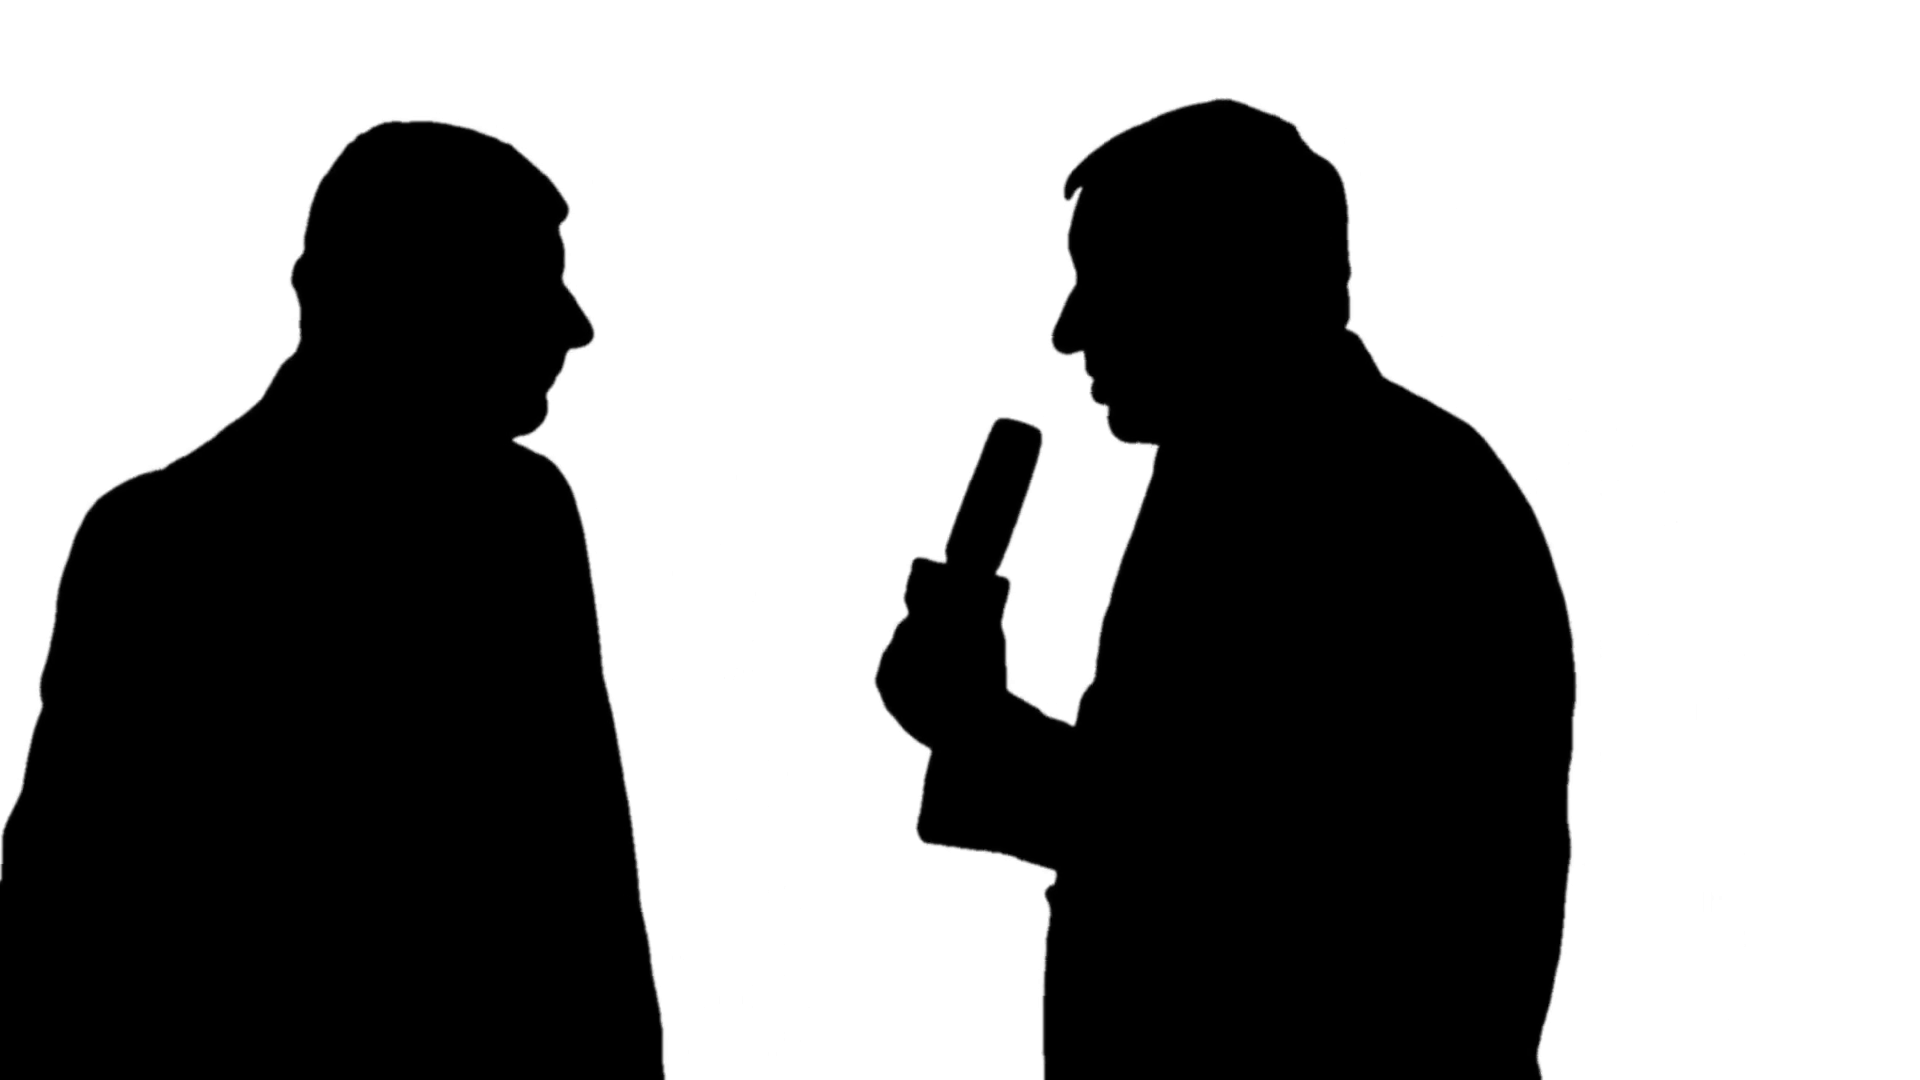 1920x1080 Silhouette Of A News Reporter Interviewing A Man On Black Amp White